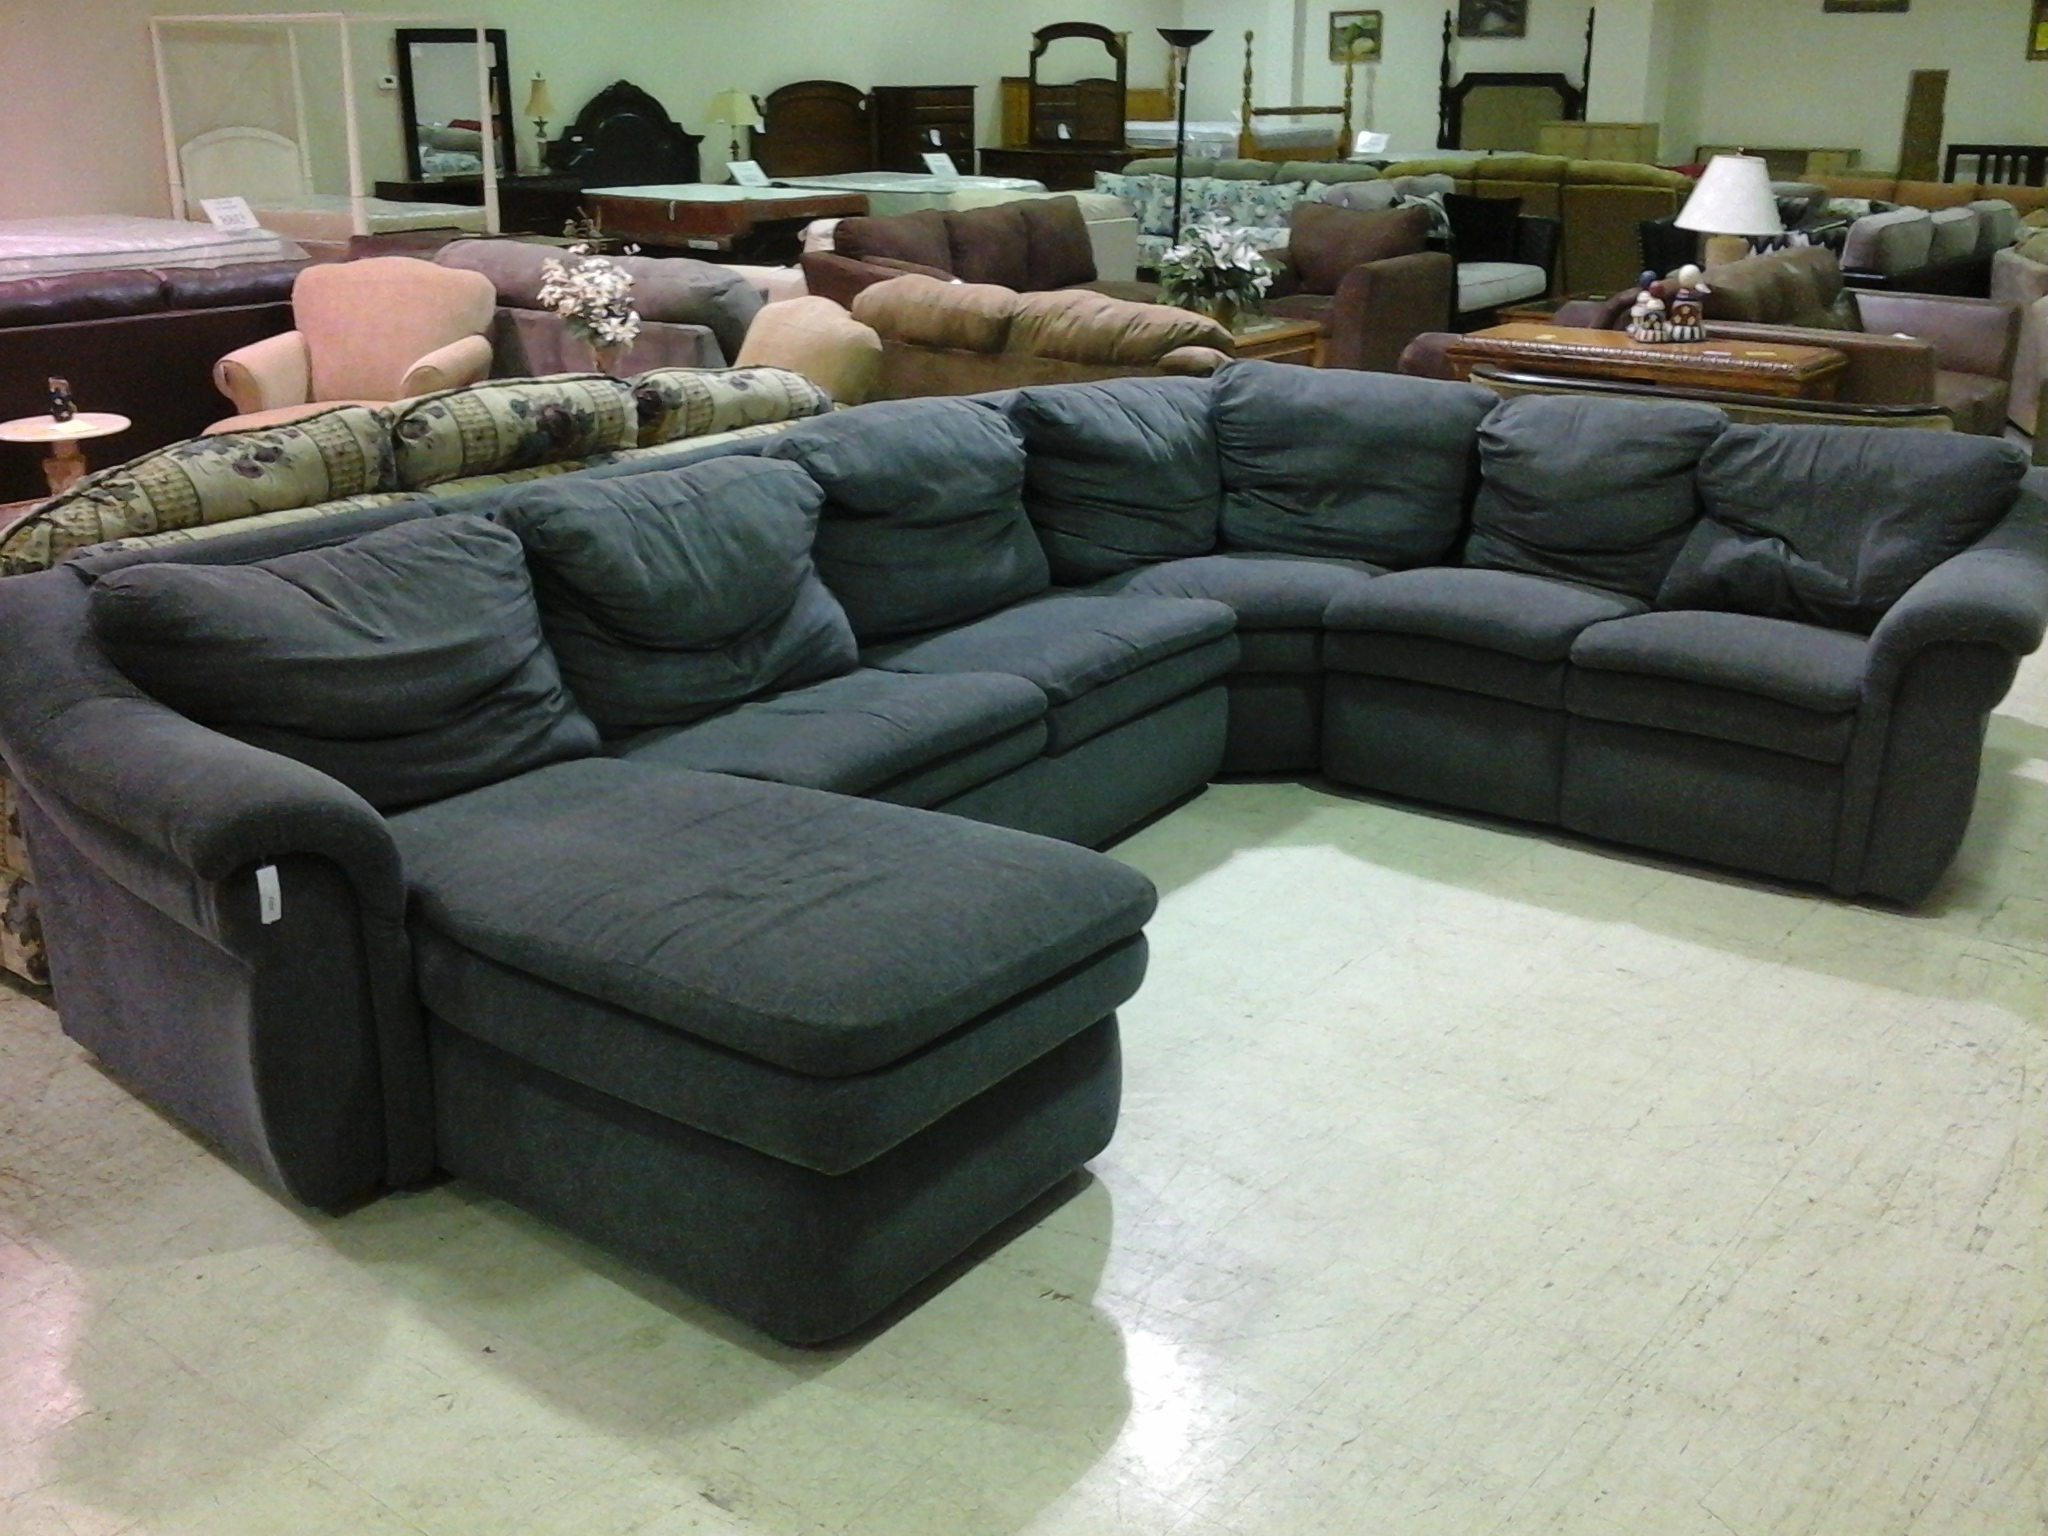 Tampa Fl Sectional Sofas Pertaining To Latest Awesome Sectional Sofas Tampa Fl – Buildsimplehome (View 10 of 15)